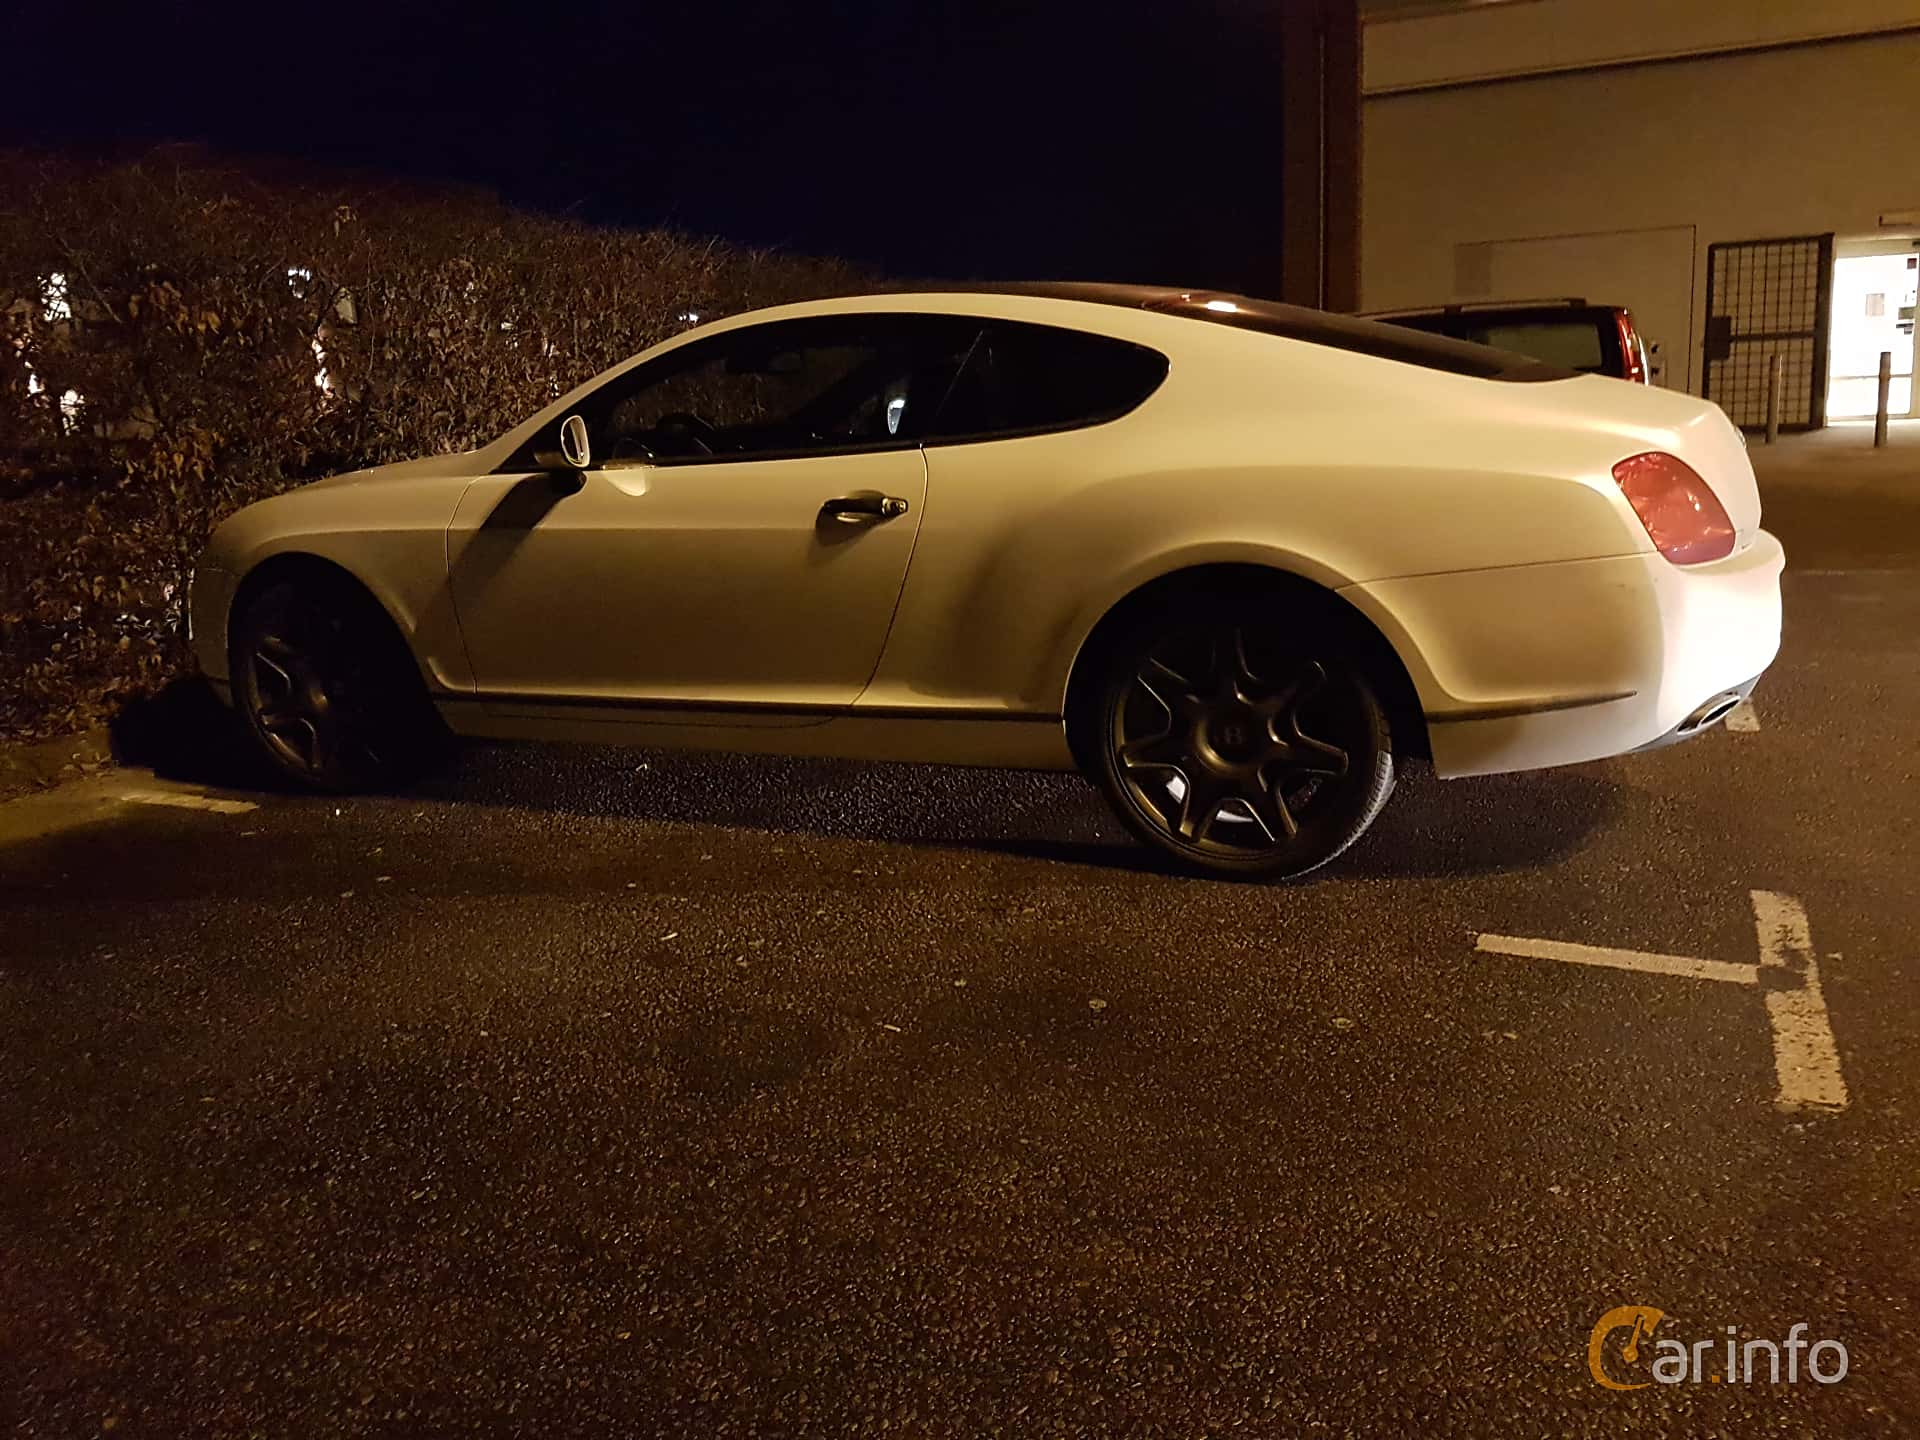 Sida av Bentley Continental GT 6.0 W12 Automatic, 560ps, 2008